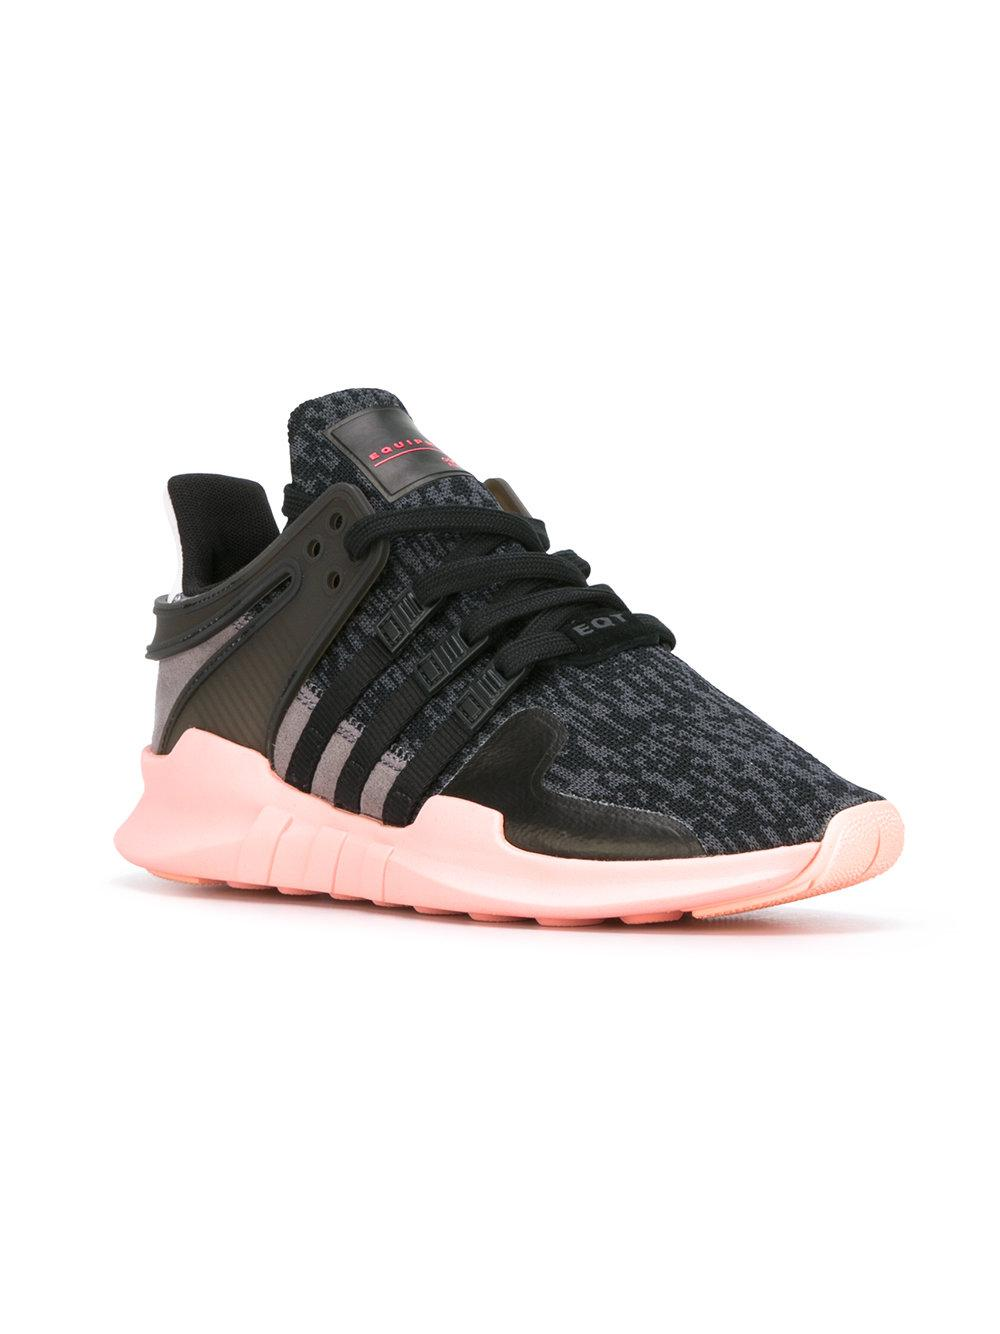 adidas Cotton Equipment Support Adv Sneakers in Black